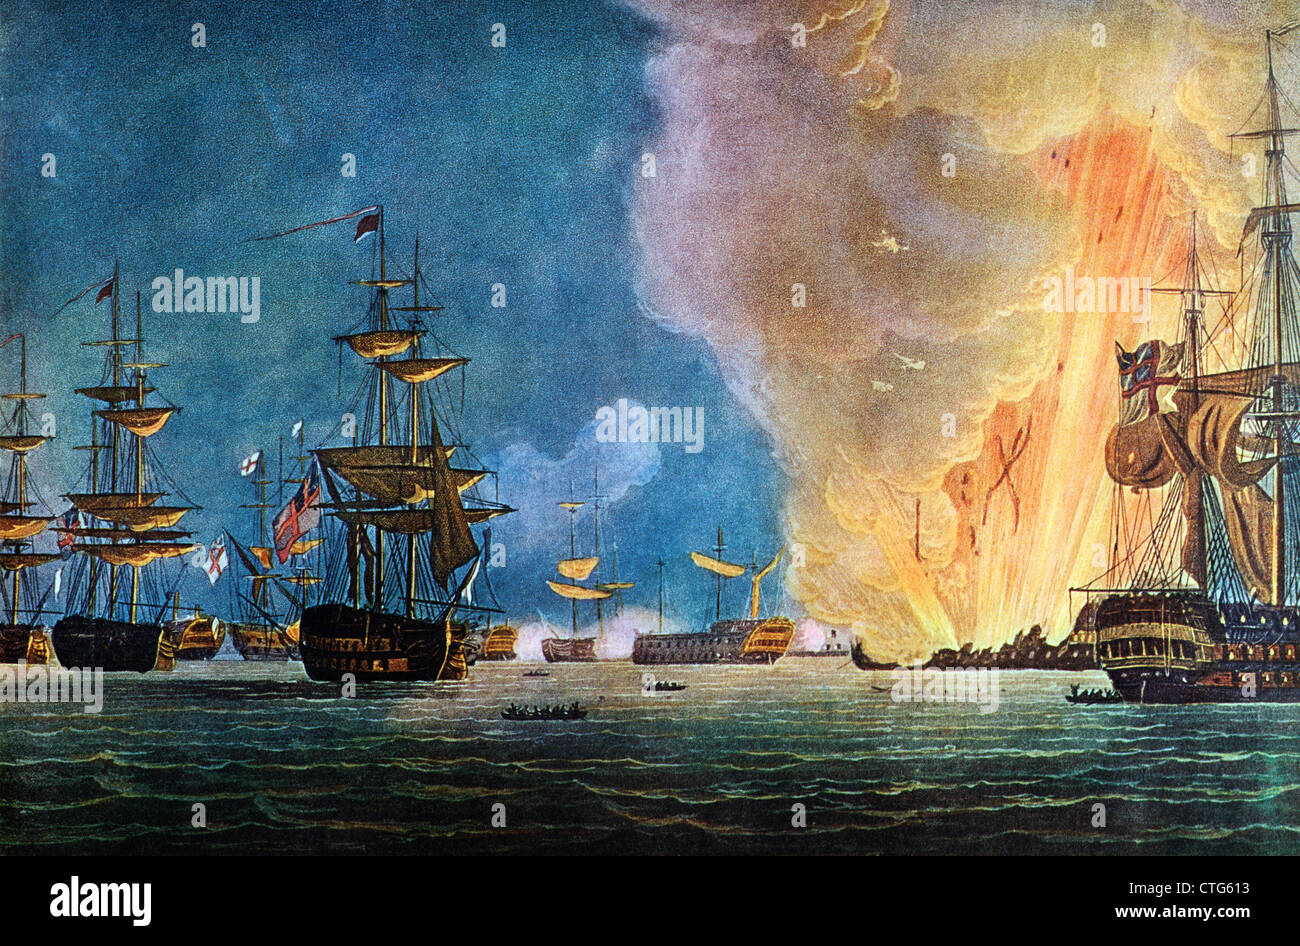 PAINTING OF THE BATTLE OF THE NILE AUGUST 1 1798 ADMIRAL HORATIO NELSON DEFEATED THE FRENCH FLEET ABOUKIR BAY - Stock Image